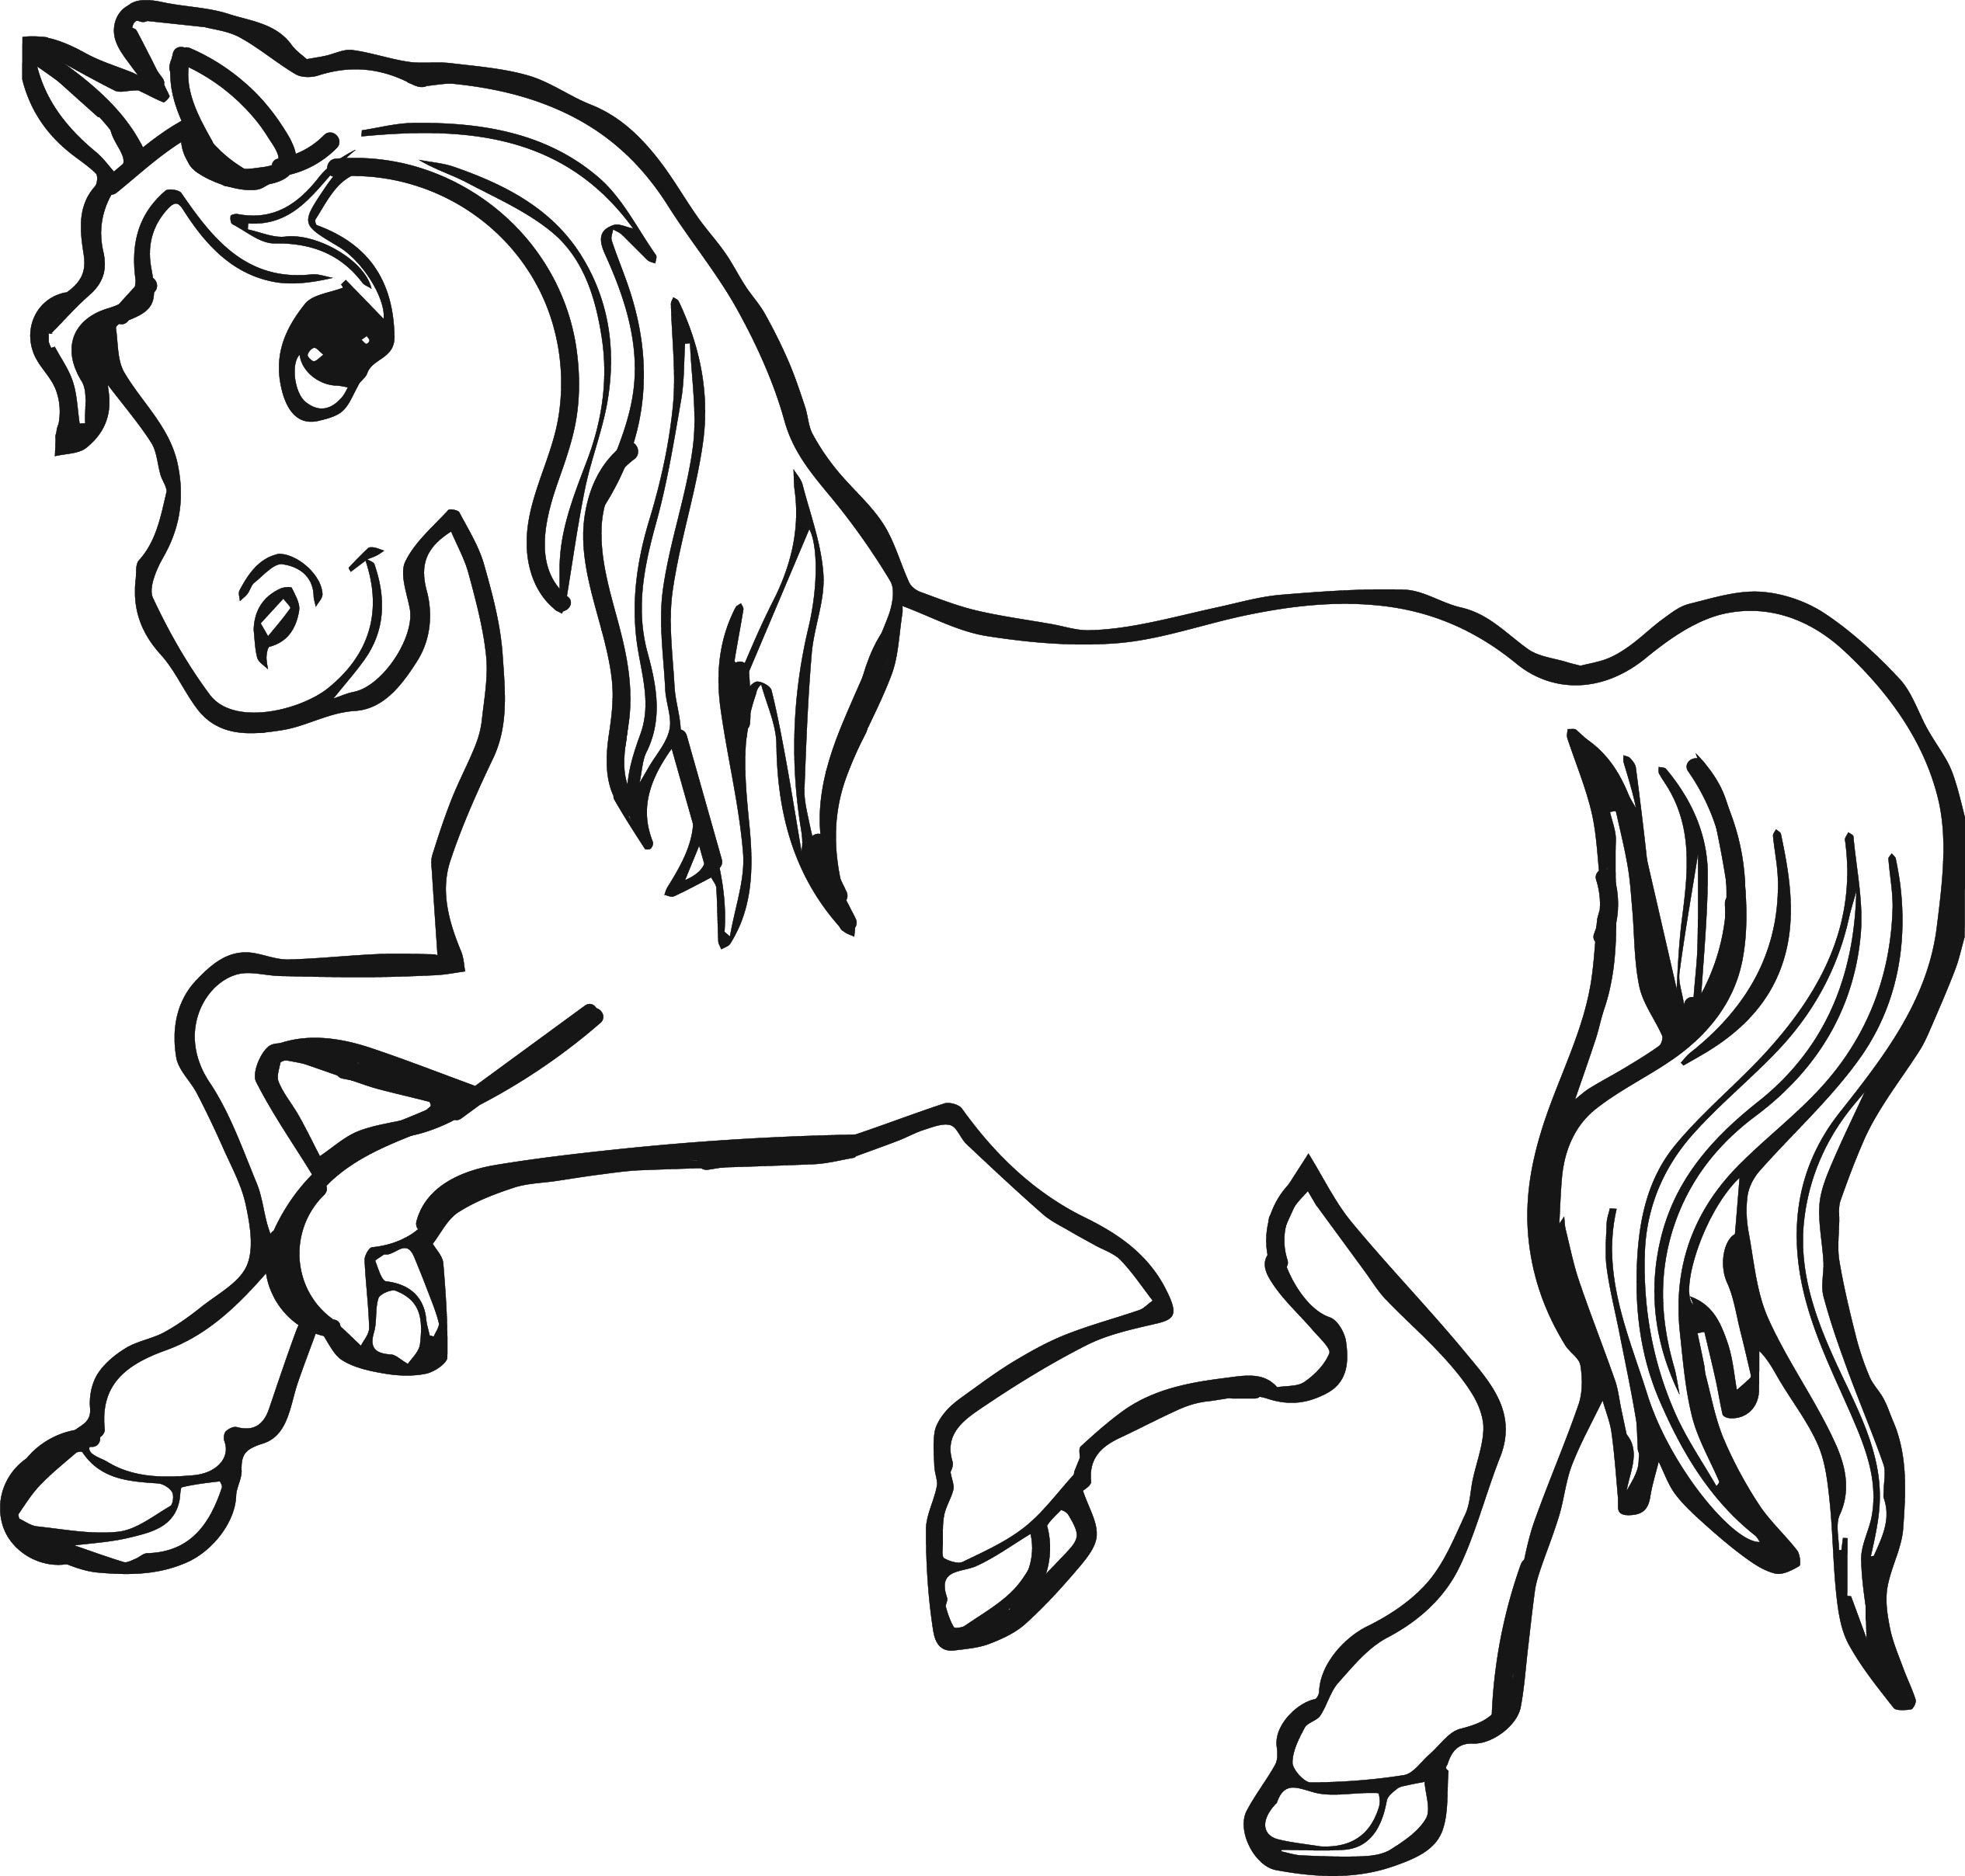 Cool Horse Coloring Pages Printable Horse Coloring Pages Animal